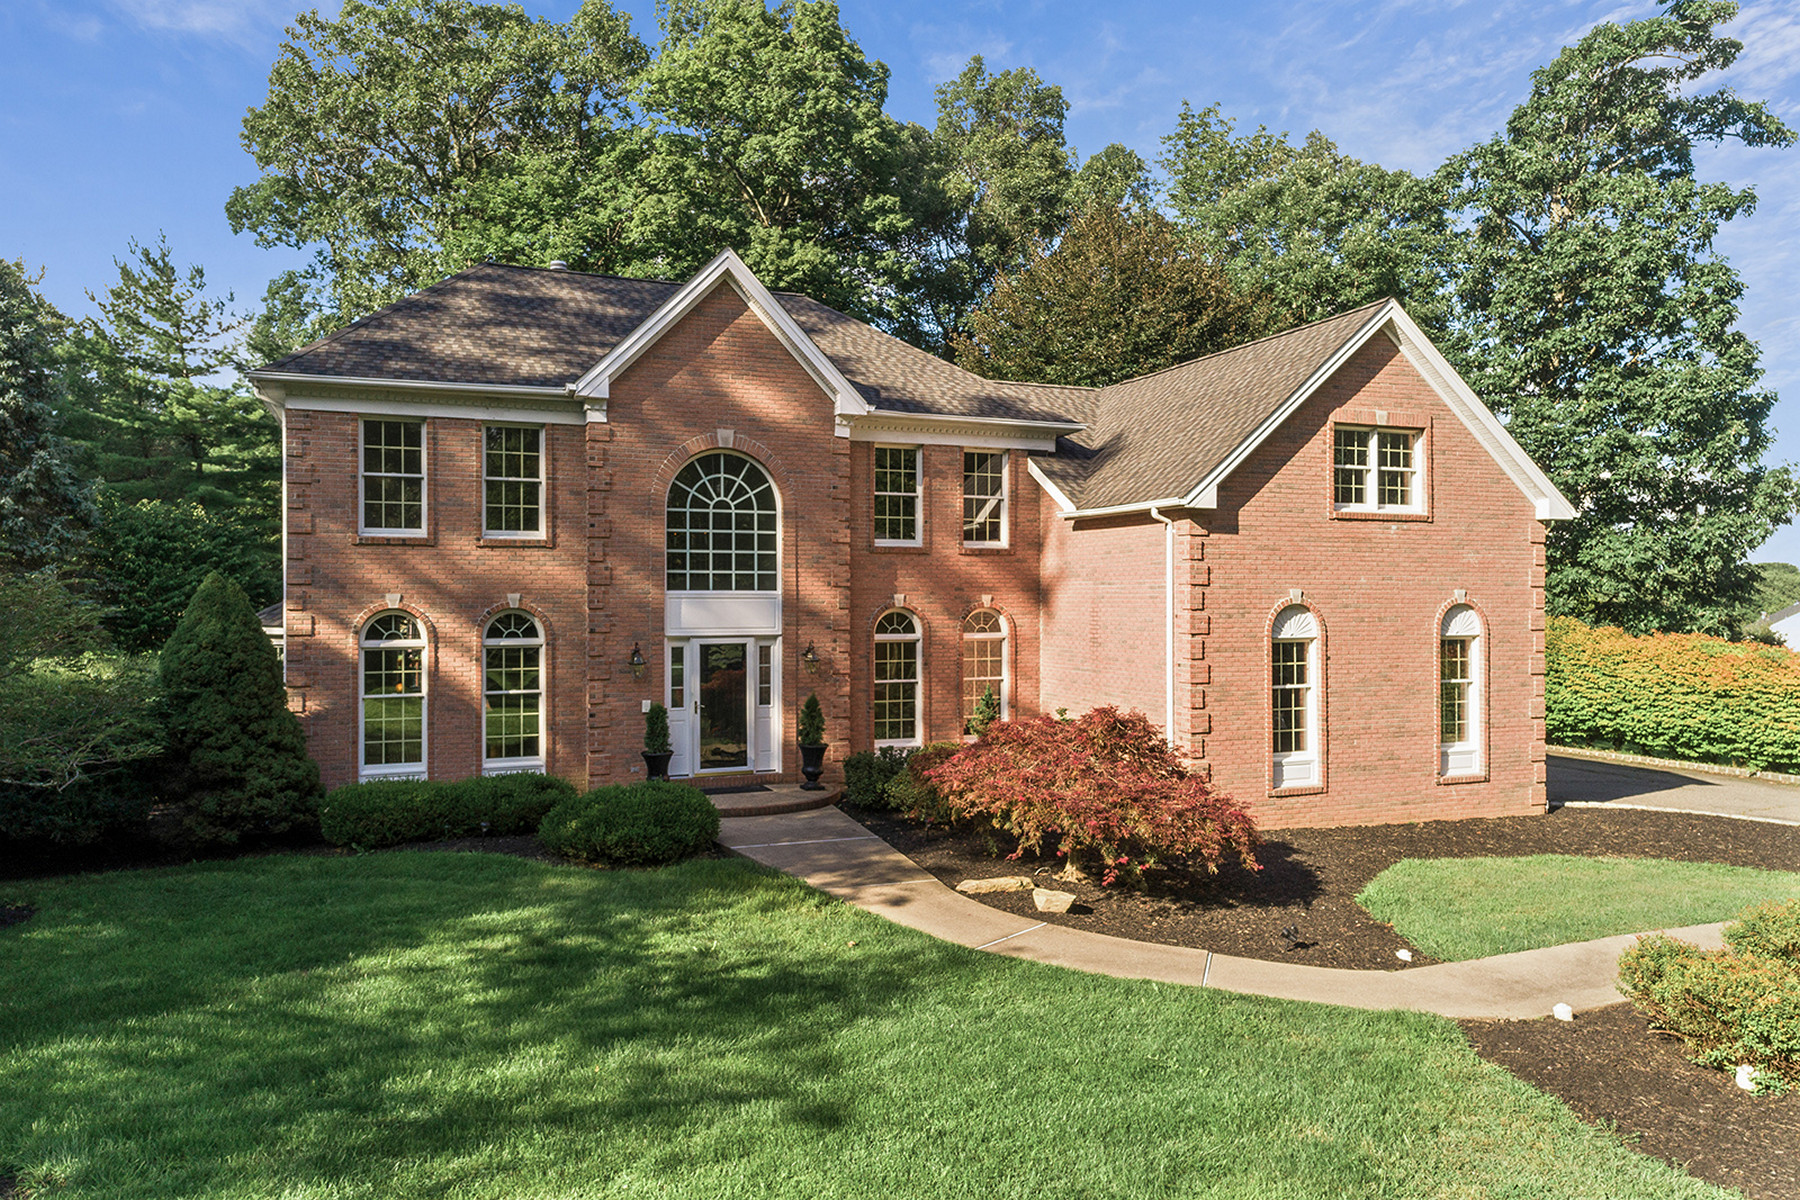 Single Family Homes for Sale at Spacious and Impeccably Maintained 1 Kobert Avenue, Mount Olive, New Jersey 07828 United States